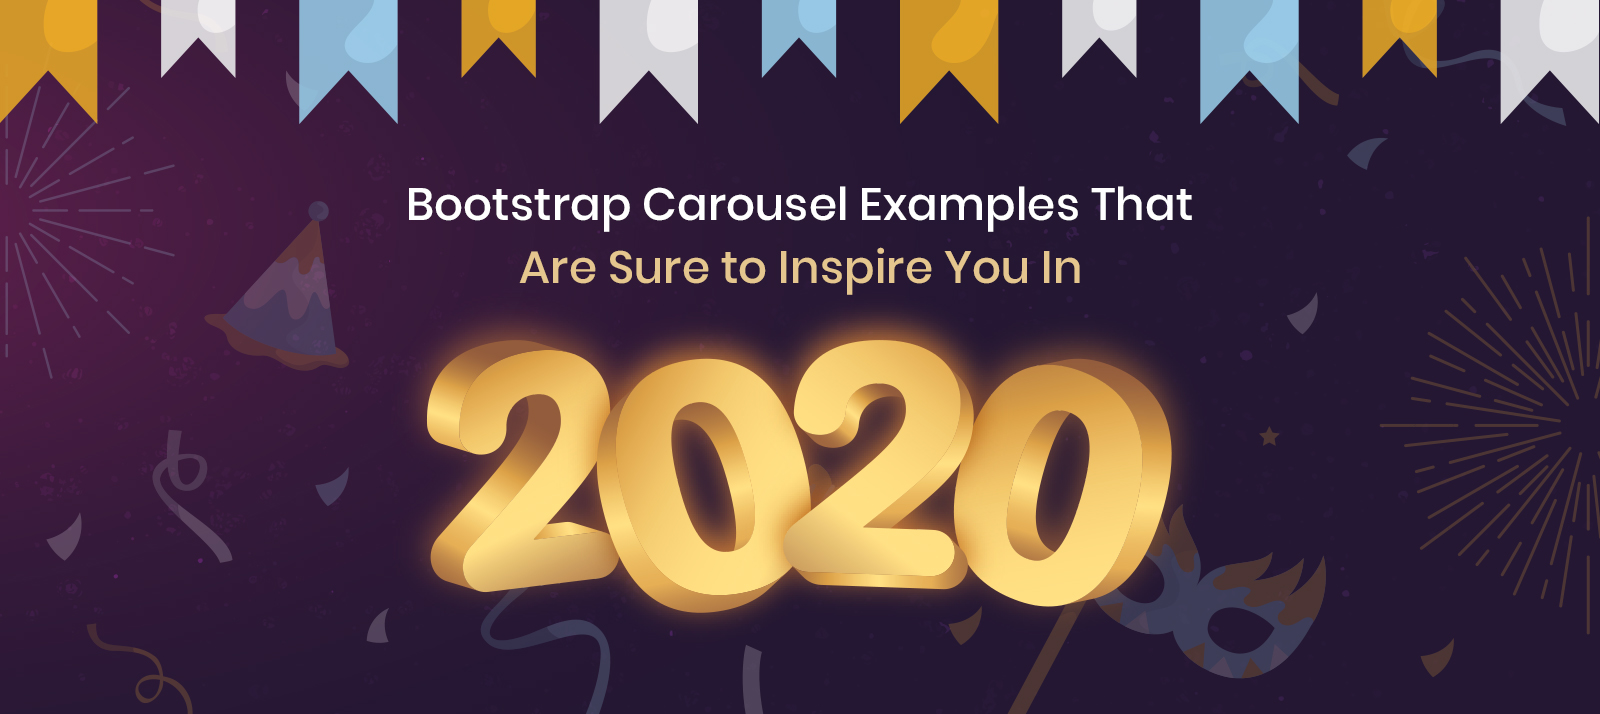 Bootstrap Carousel Examples That Are Sure to Inspire You in 2020